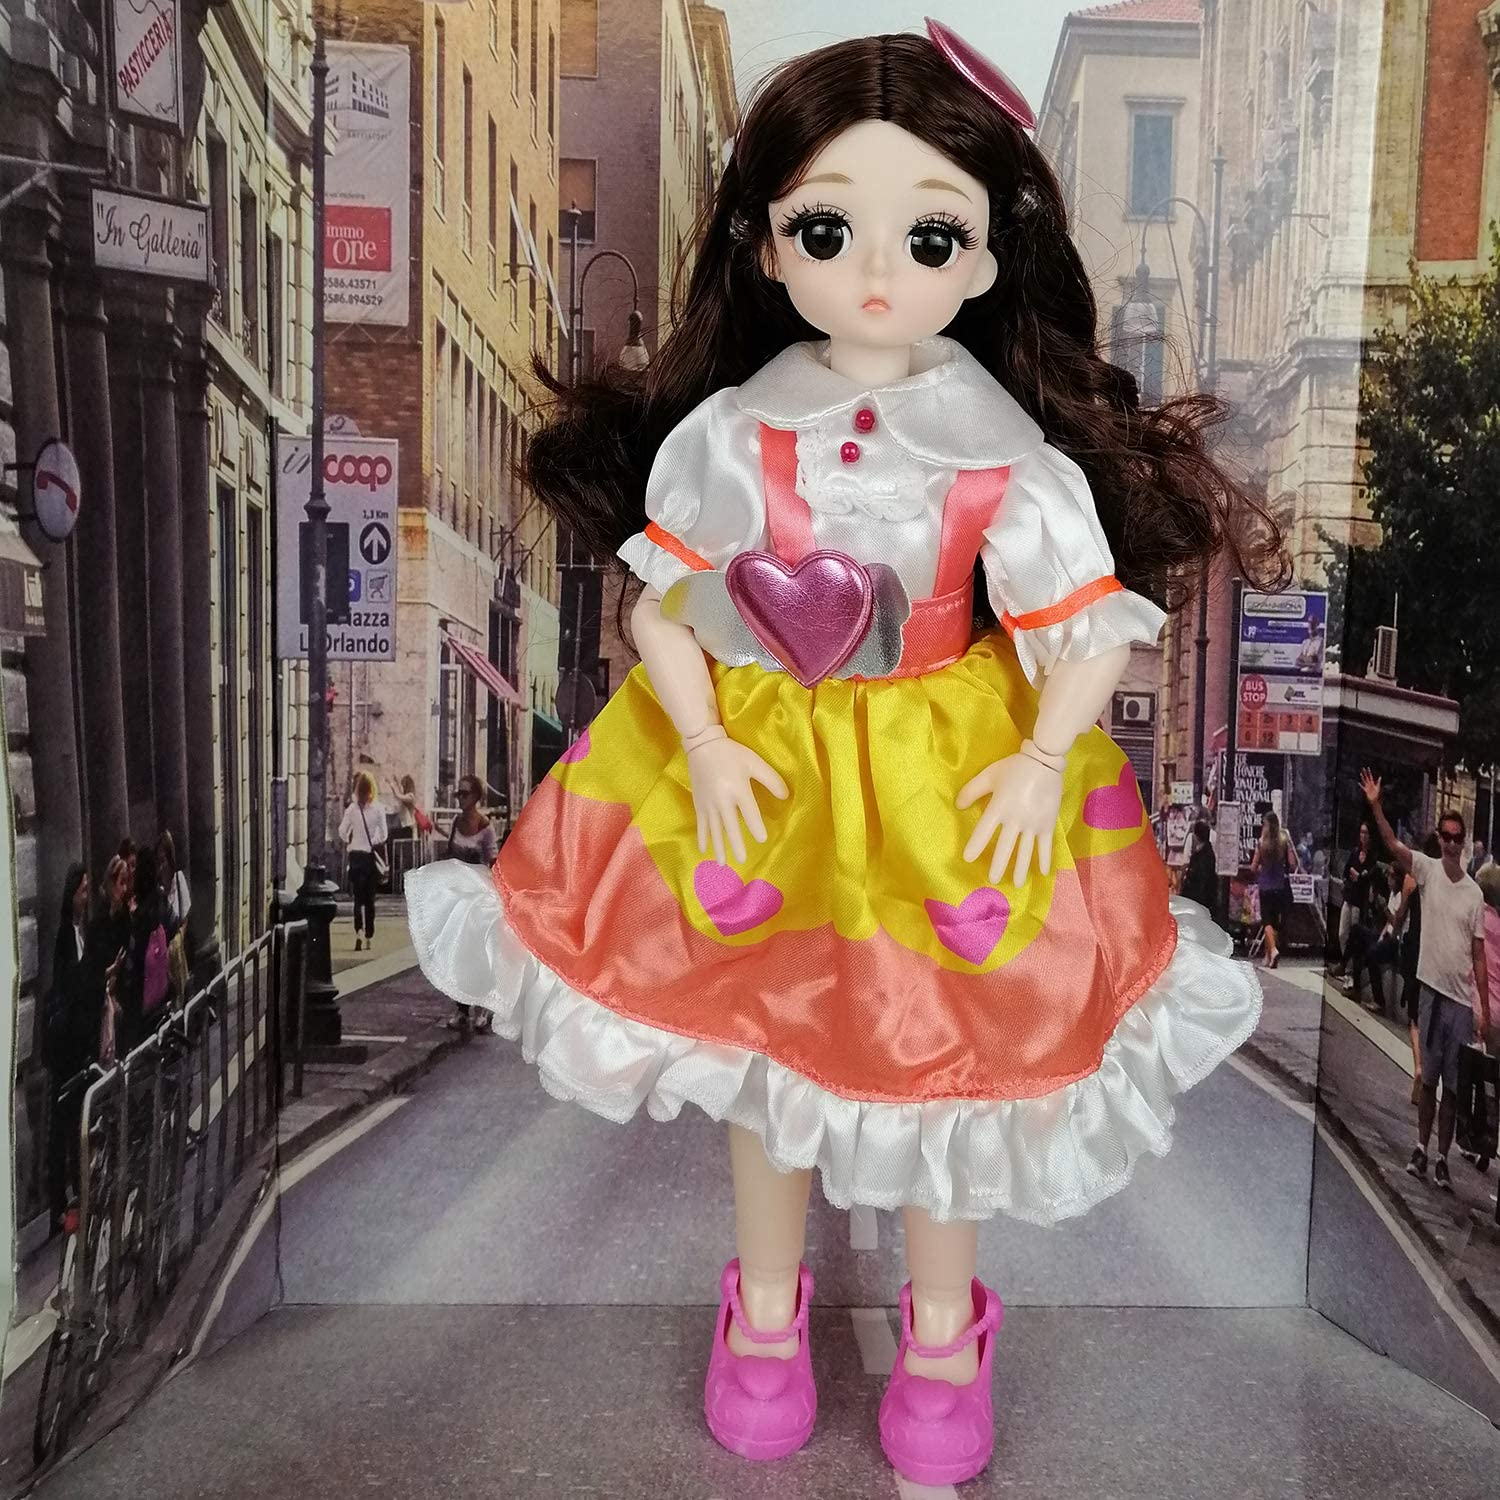 Dark Brown EVA BJD 1//6 28cm 12 Jointed Plastic Dolls Girl with Wig Shoes Dress Clothes Girls Gift Toy DIY Model